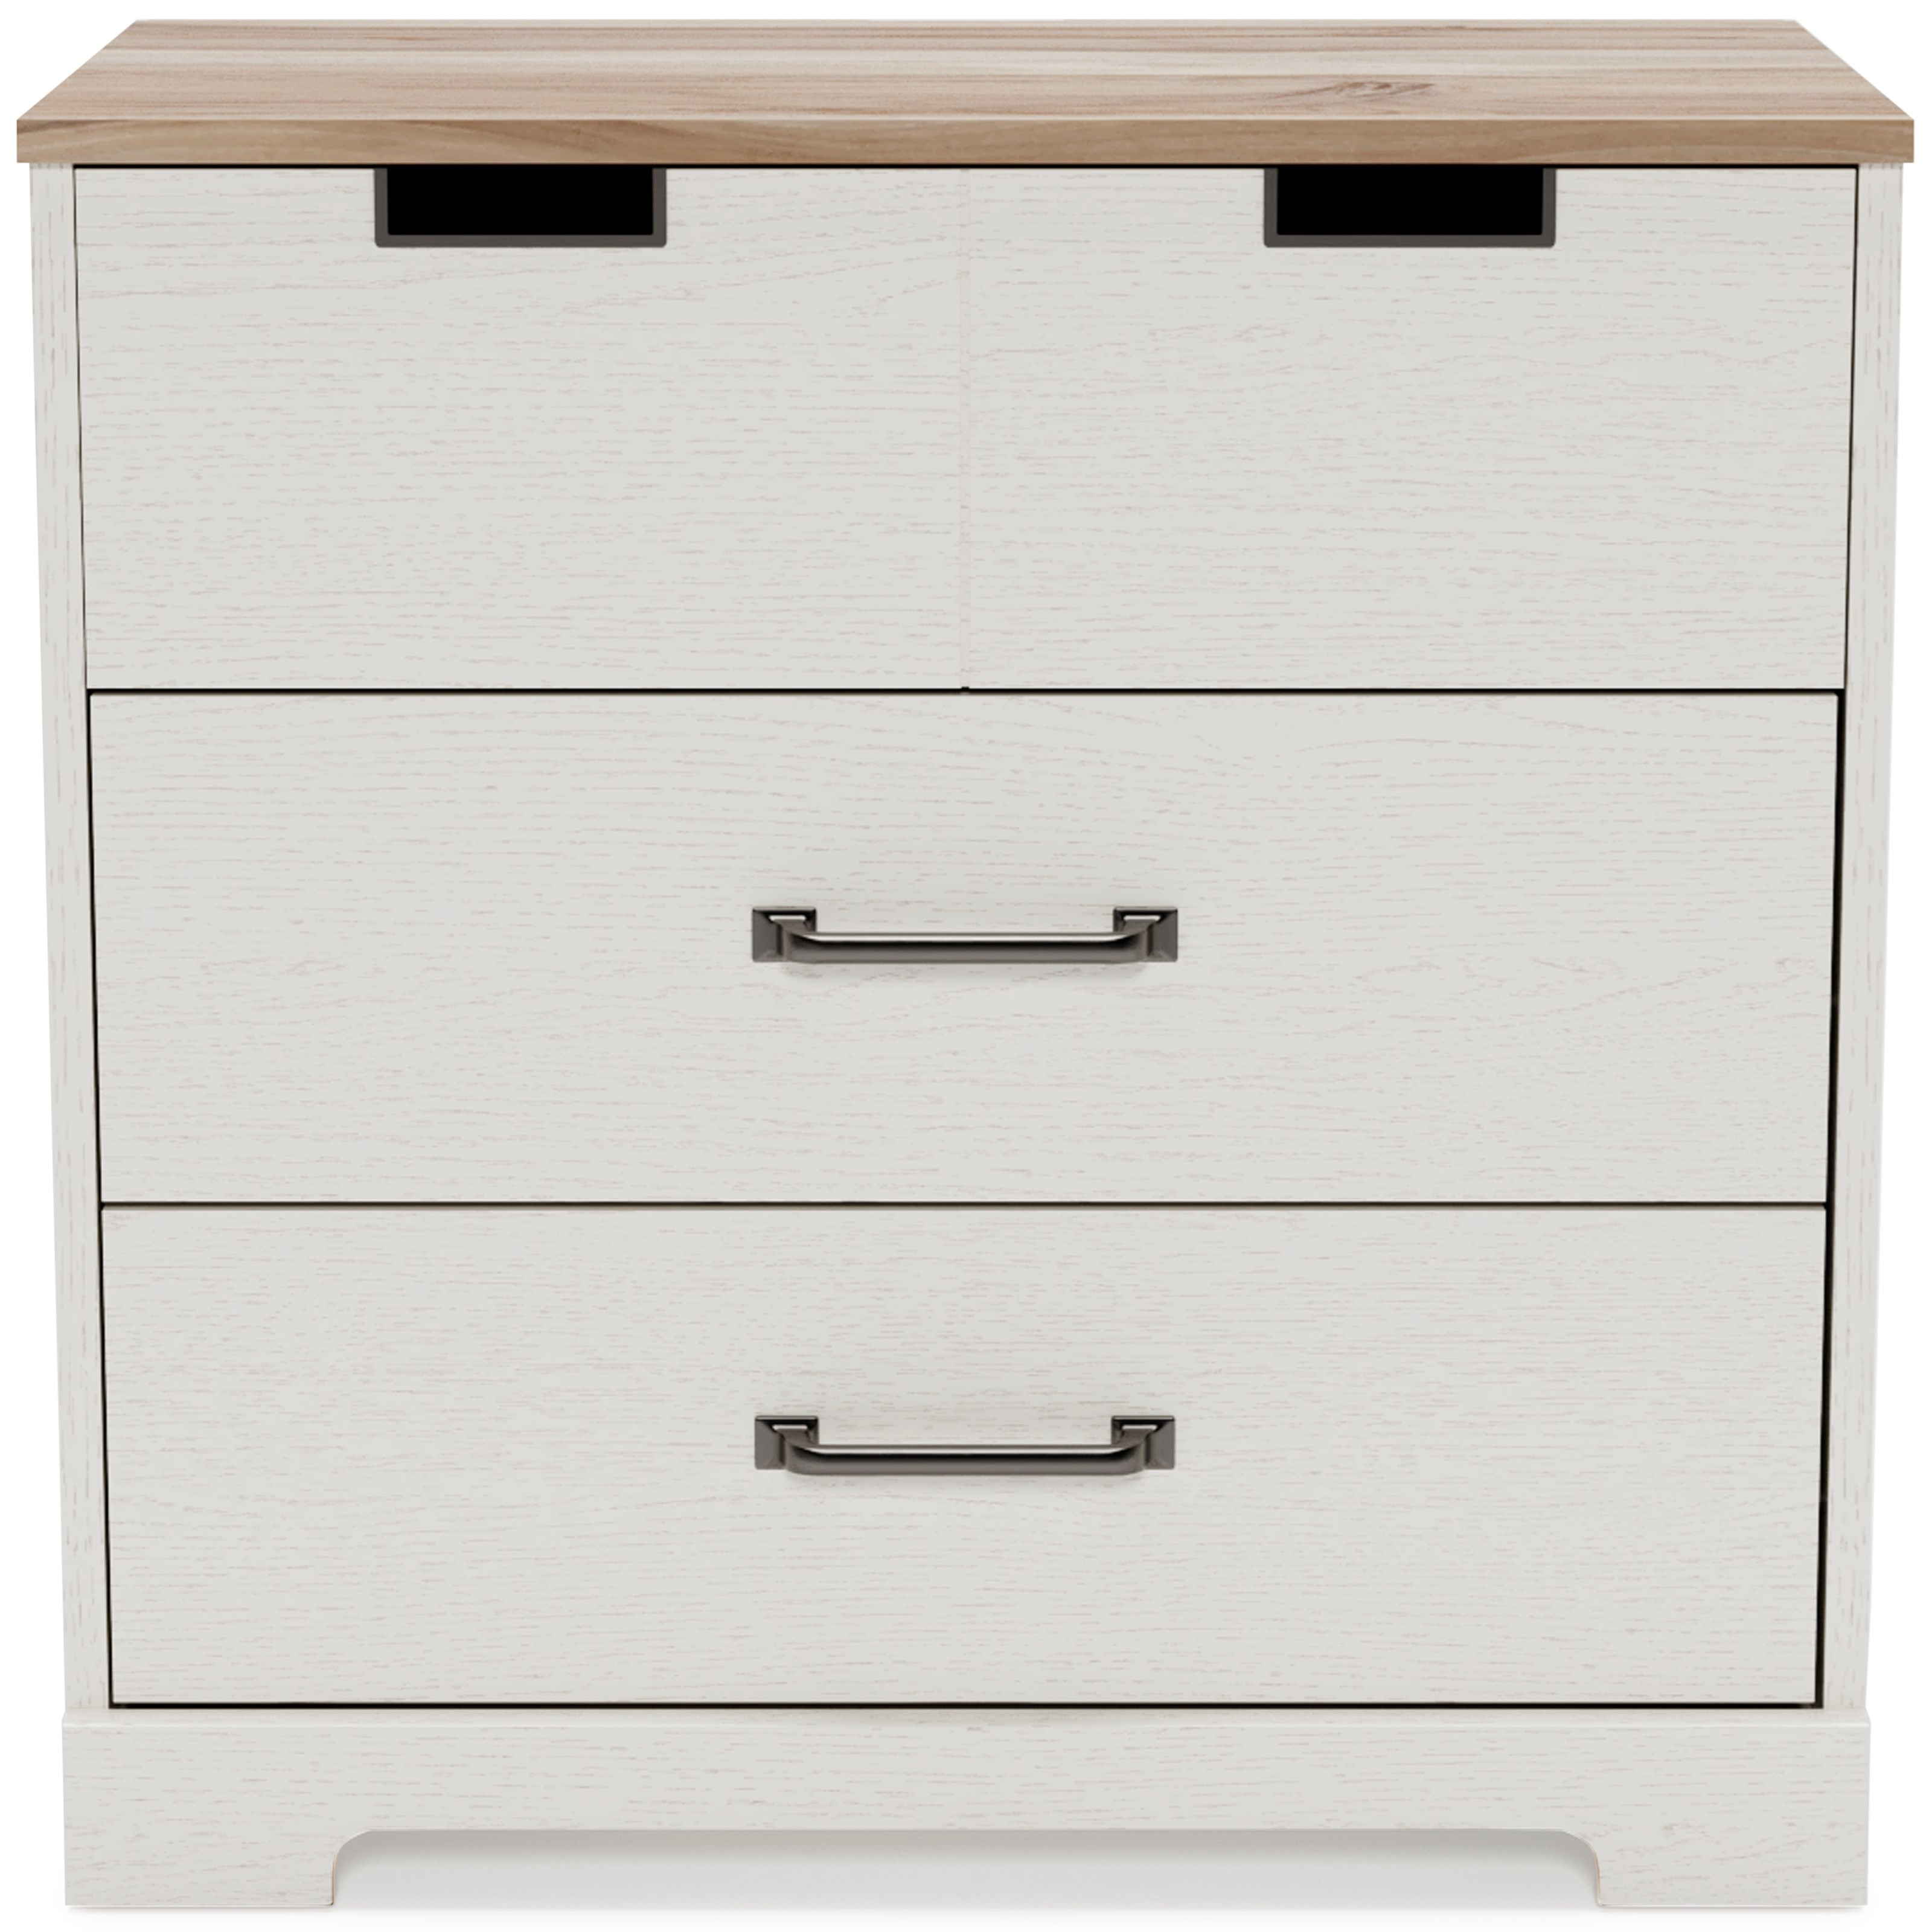 Vaibryn Chest of Drawers by Signature Design by Ashley at Furniture Barn